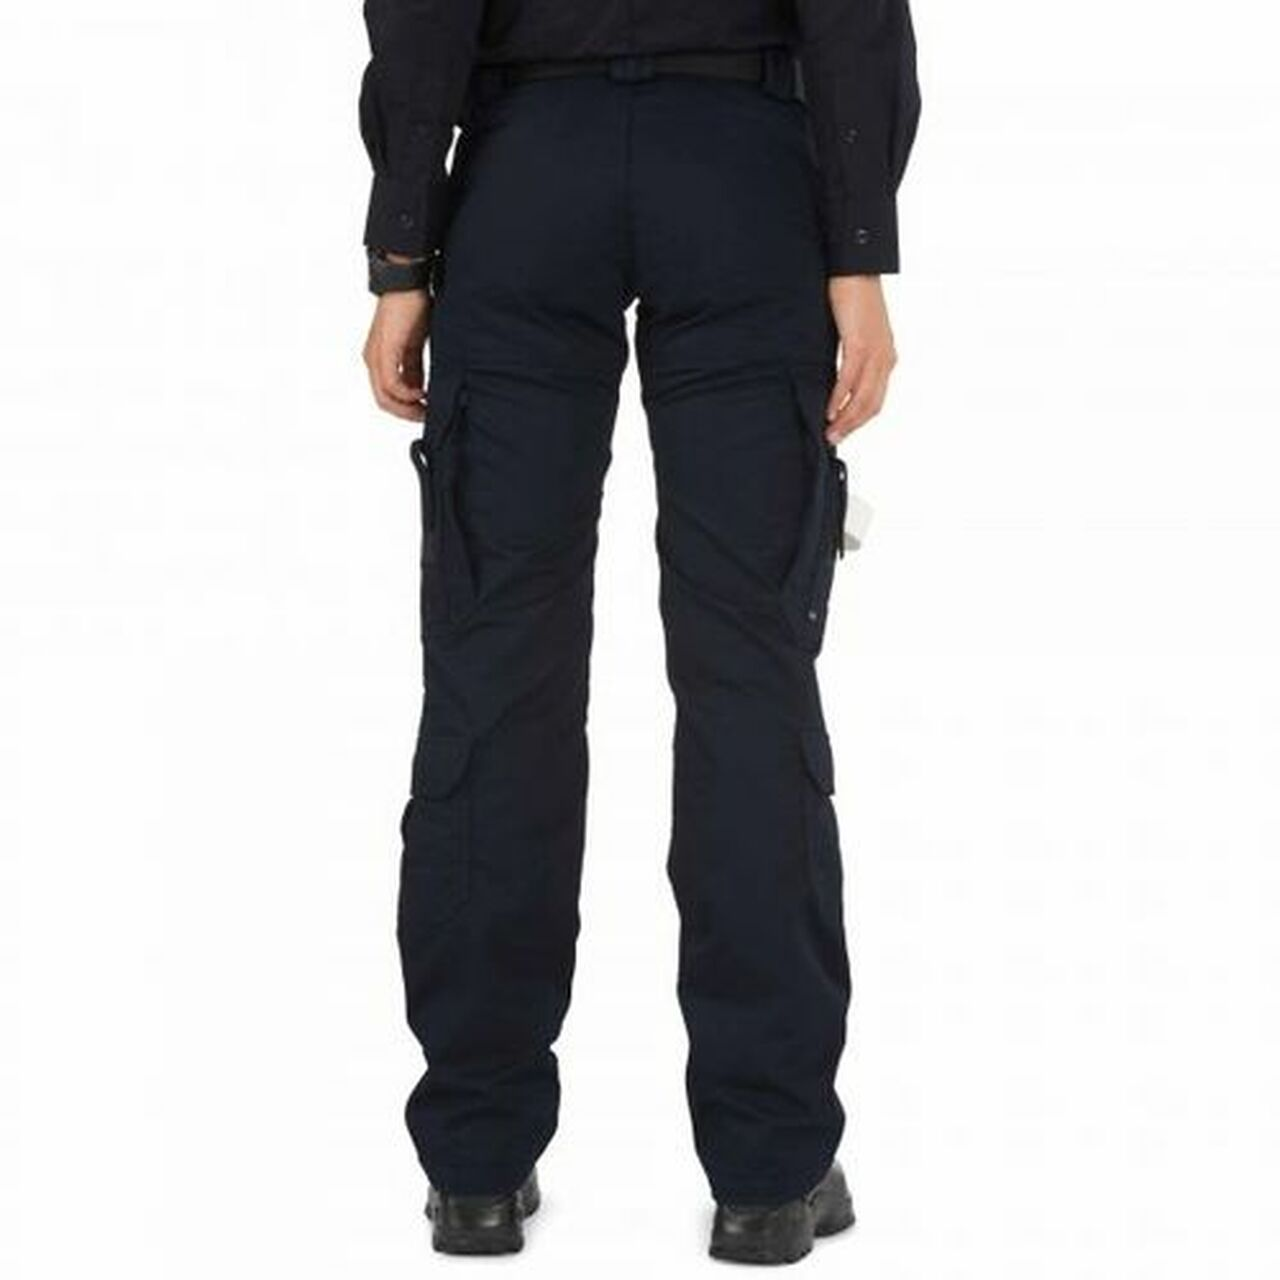 5.11 Tactical 64301 Women's EMS Uniform Cargo Pants, Classic/Straight Fit, Knee Pad Pocket, Polyester/Cotton, Available in Black, or Dark Navy